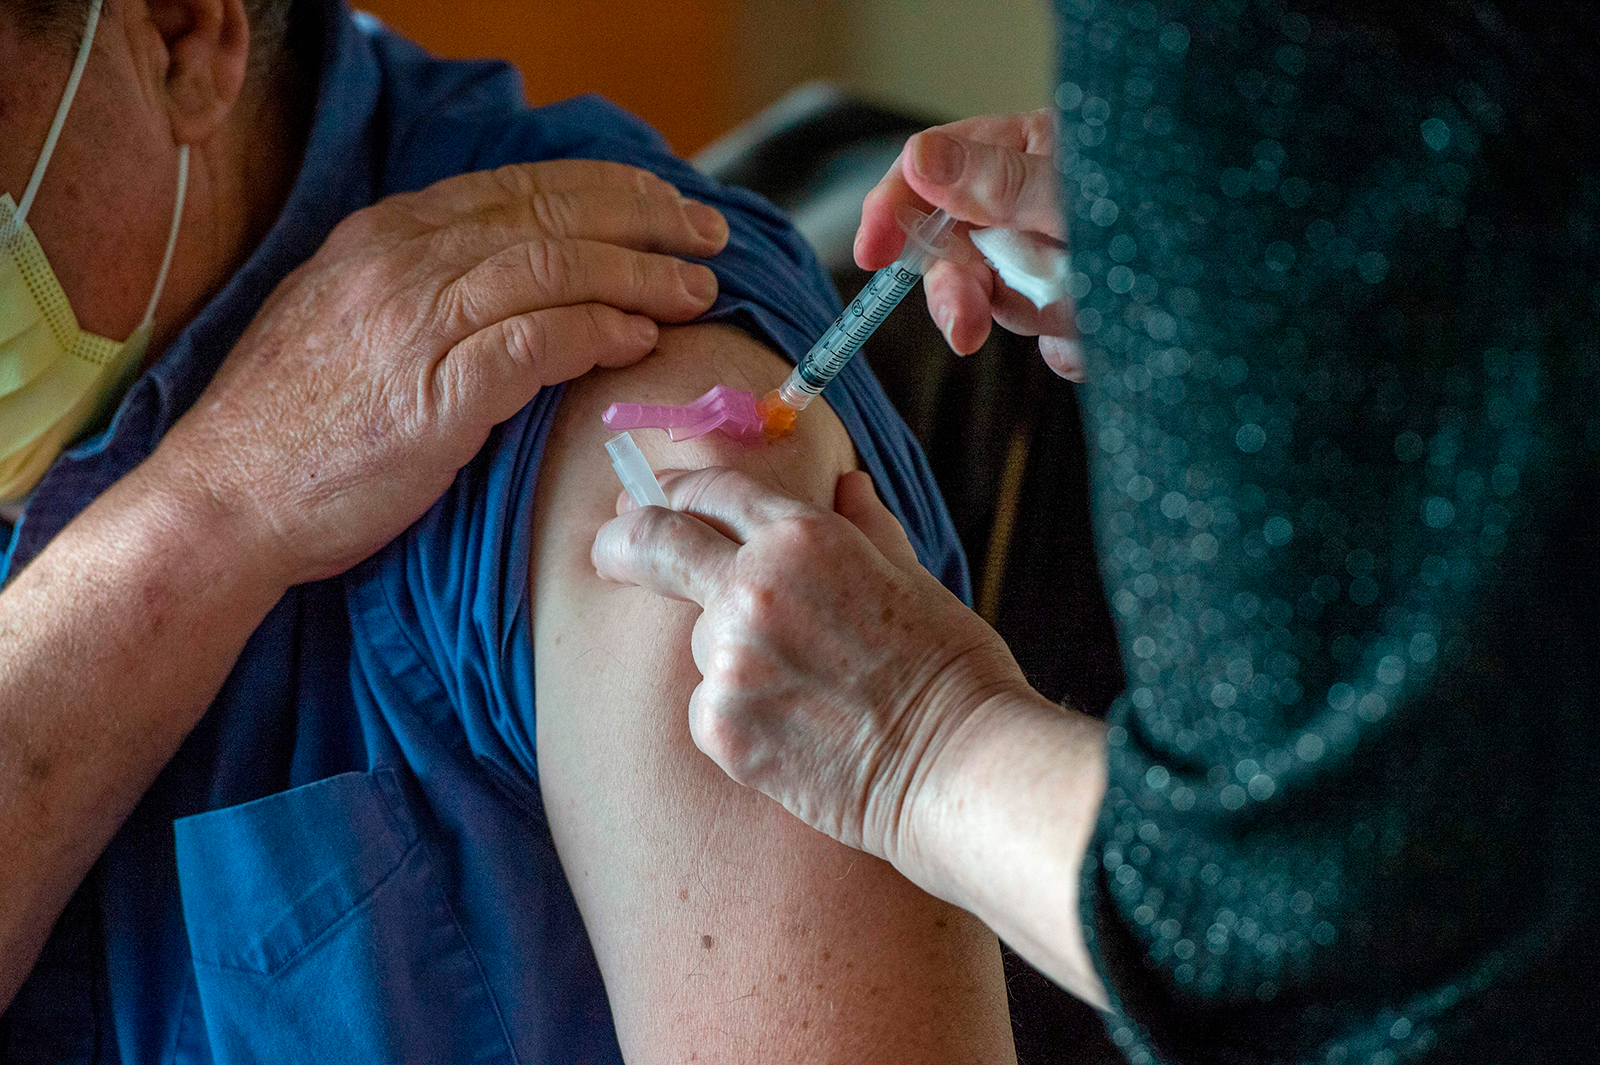 A person receives the Moderna Covid-19 vaccine at the East Boston Neighborhood Health Center (EBNHC) in Boston, Massachusetts, on December 24, 2020.